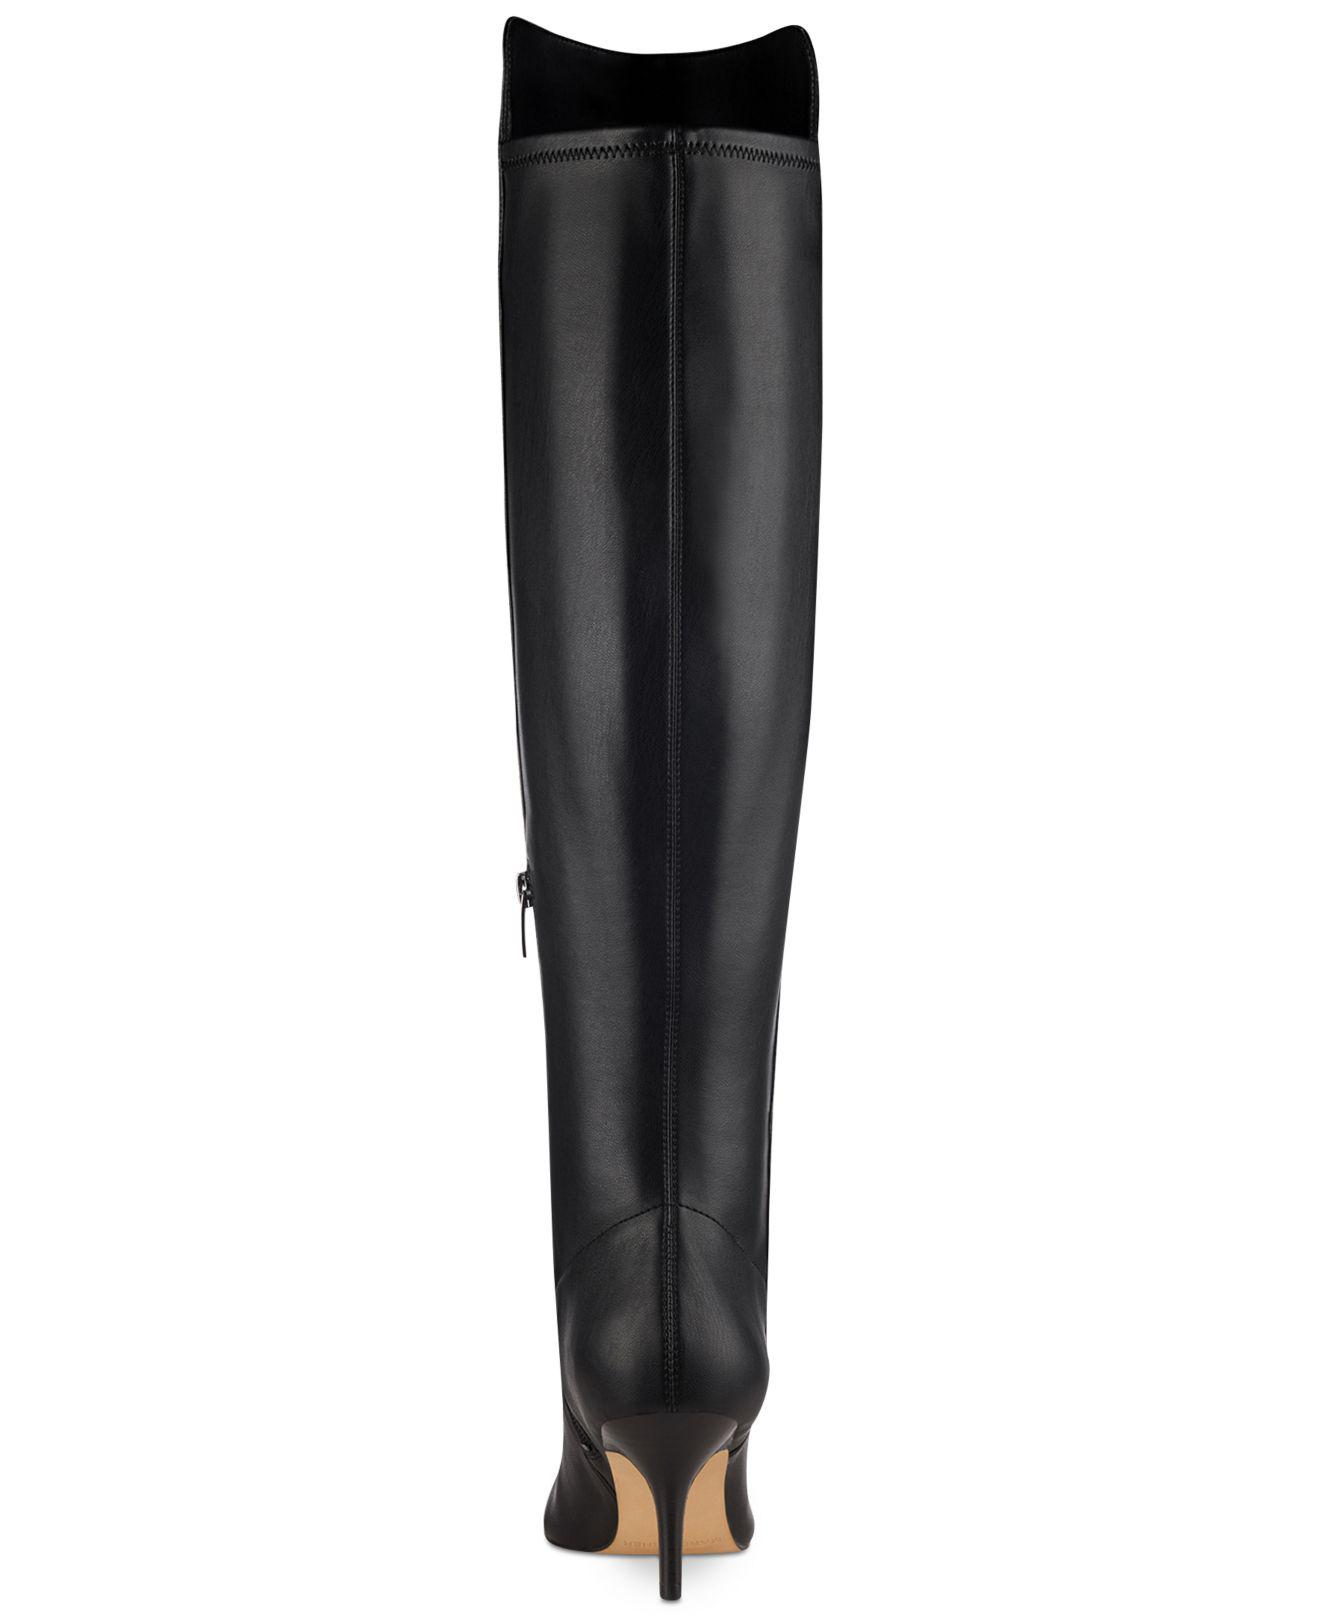 7bfb7847a1 Marc Fisher Womens Adana Pointed Toe Over Knee Fashion Boots | eBay